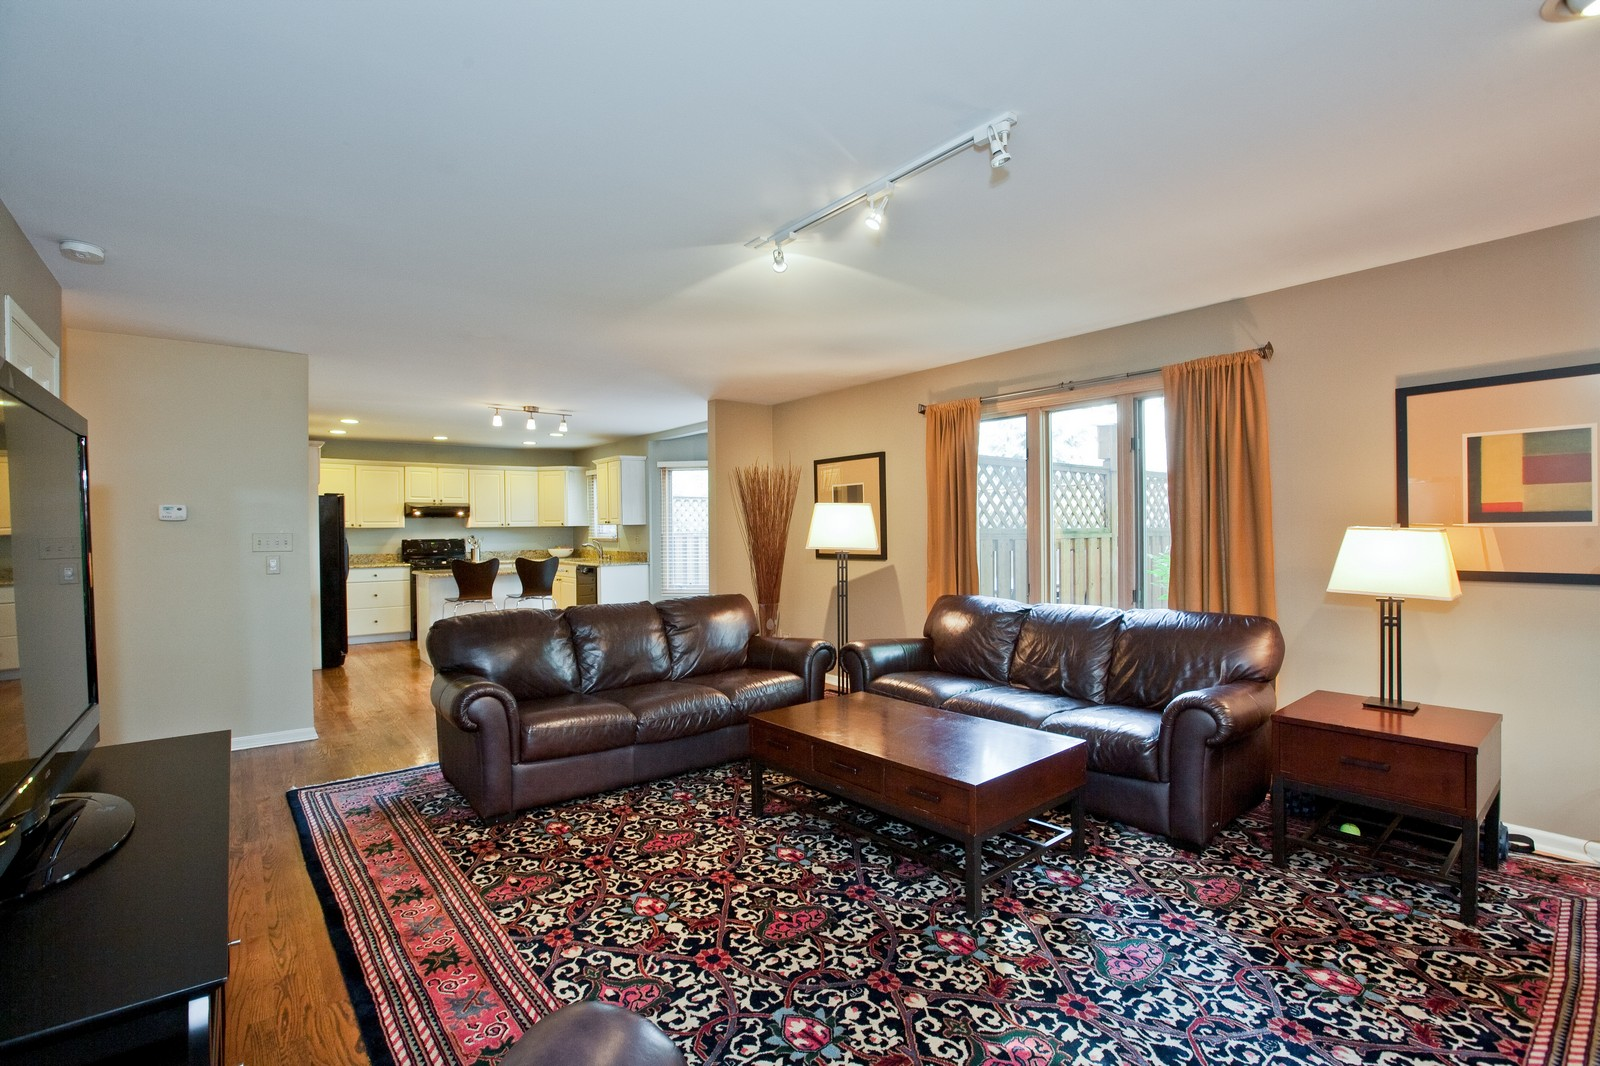 Real Estate Photography - 1031 W. 119th St, Lemont, IL, 60439 - Family Room / Kitchen